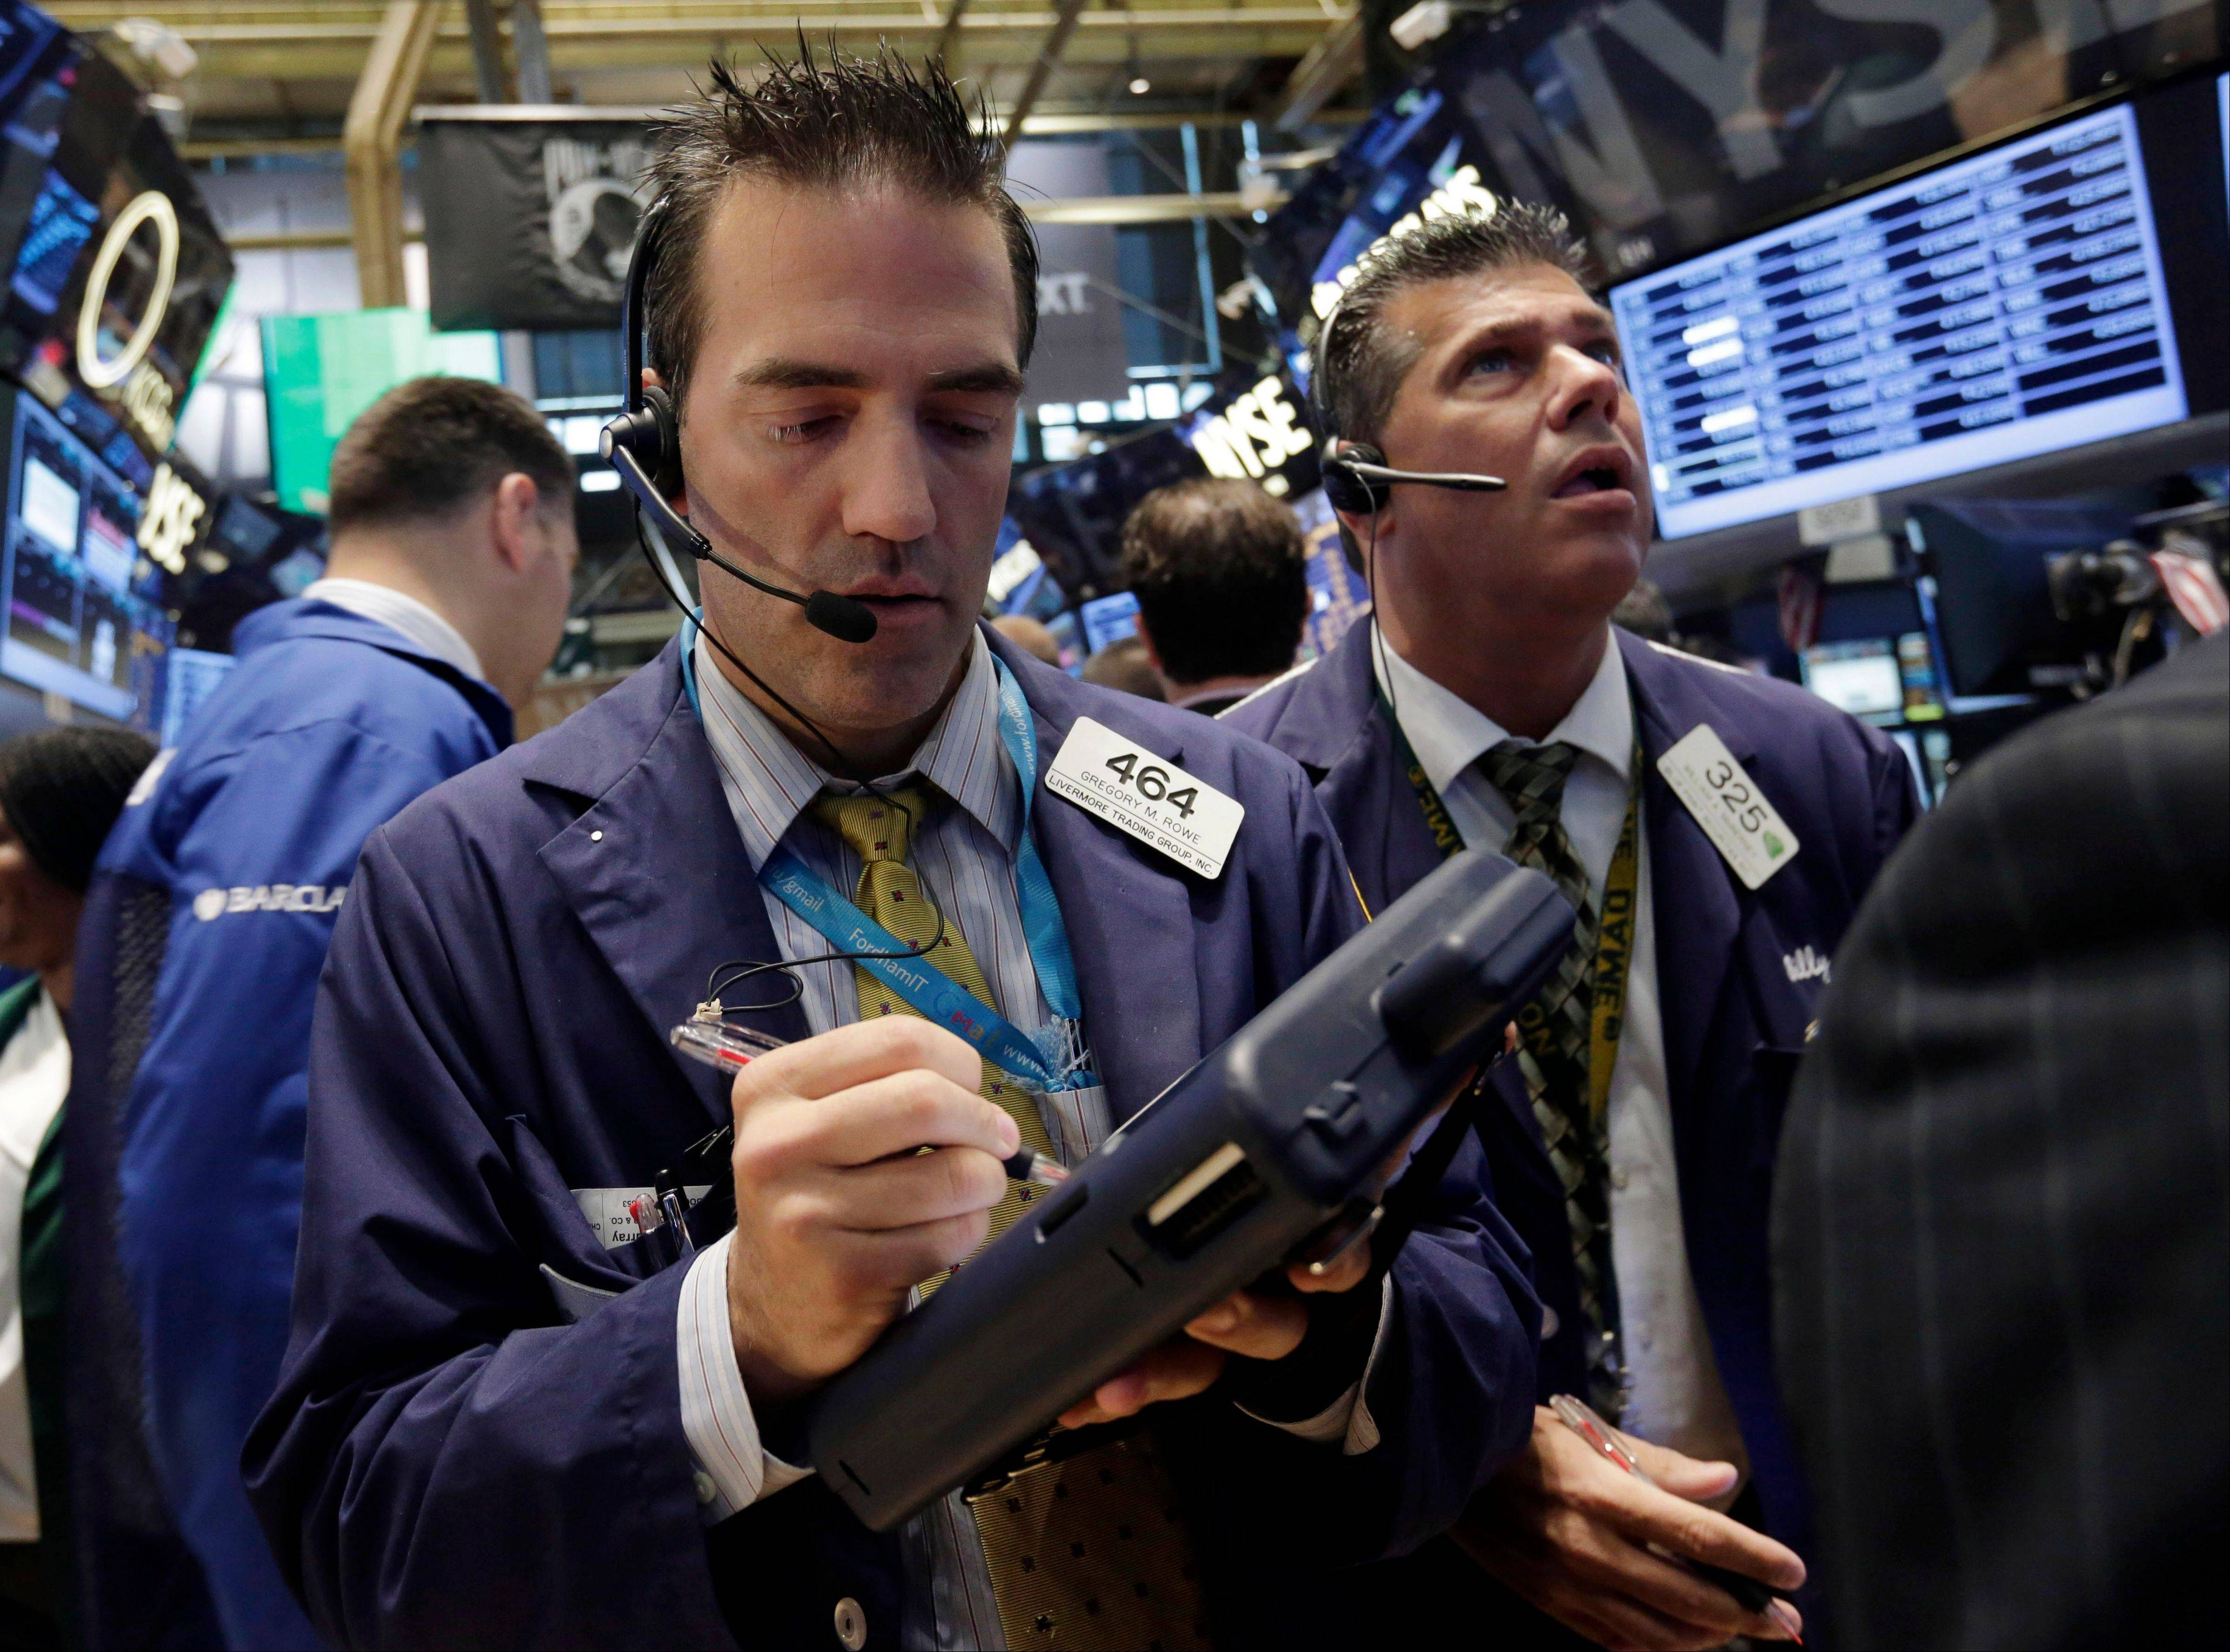 U.S. stocks rose, with the Standard & Poor�s 500 Index rebounding from an eight-week low, as energy shares rallied and investors watched developments on Syria.